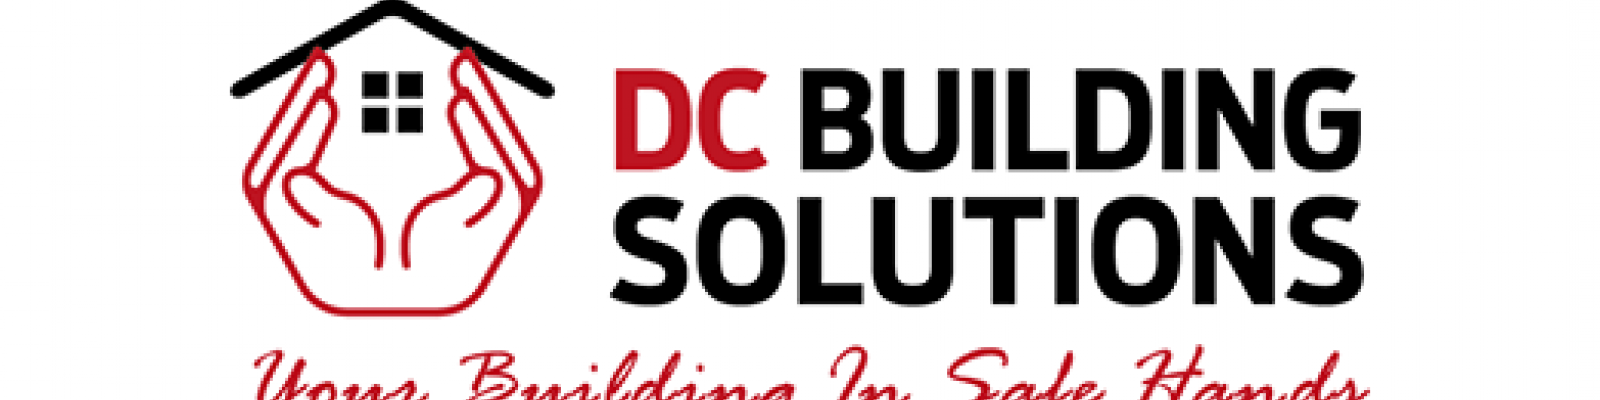 DC Building Solutions